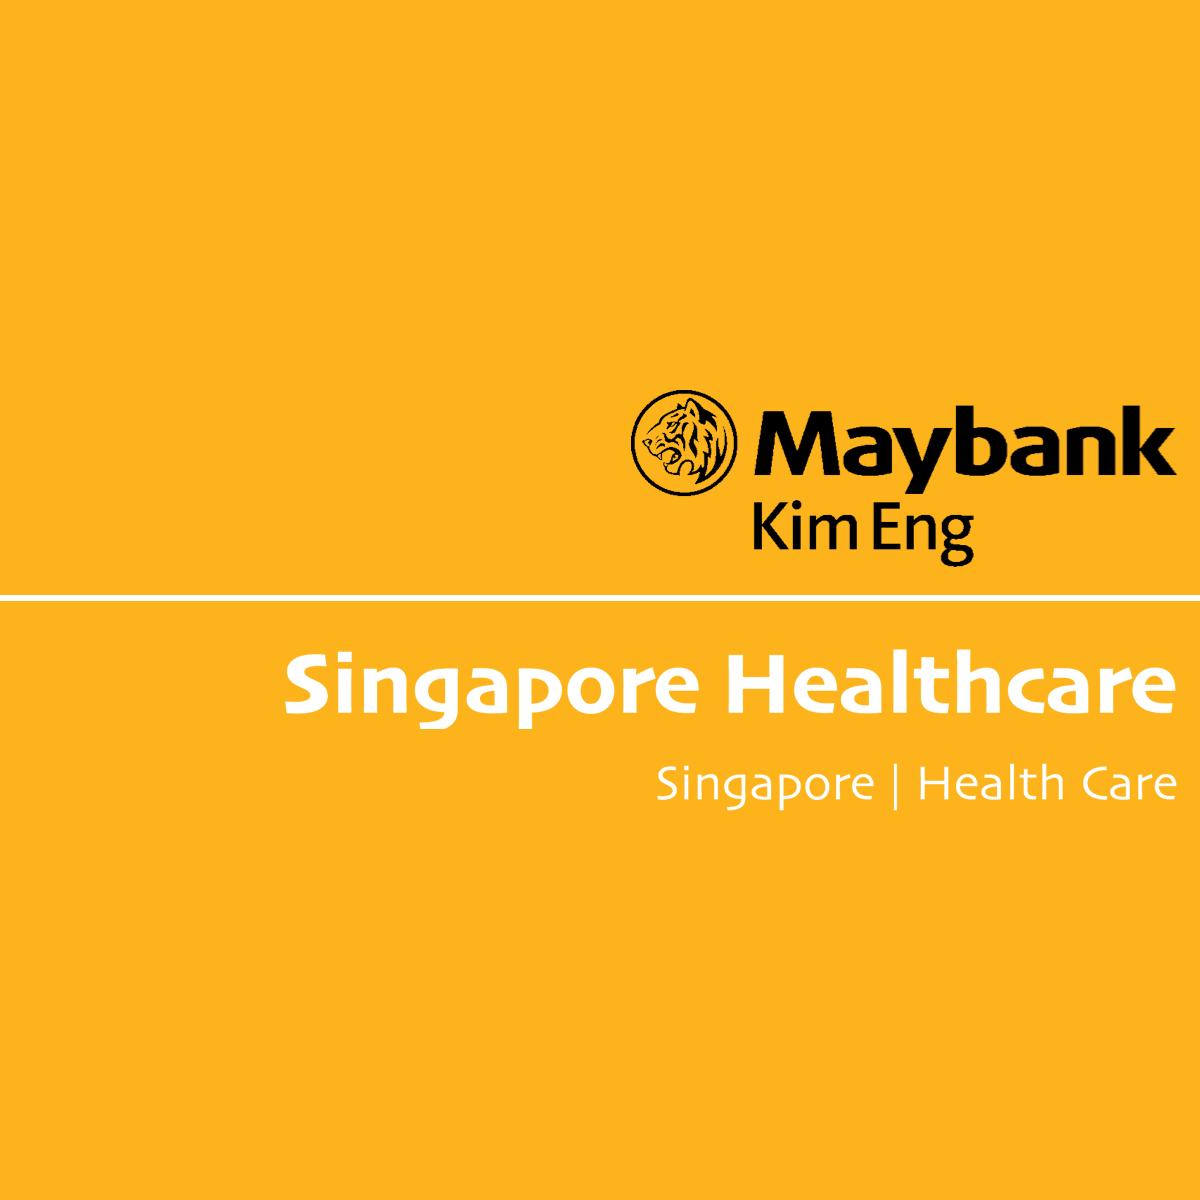 Singapore Healthcare - Maybank Kim Eng 2017-01-11: Tapping the silver dollar